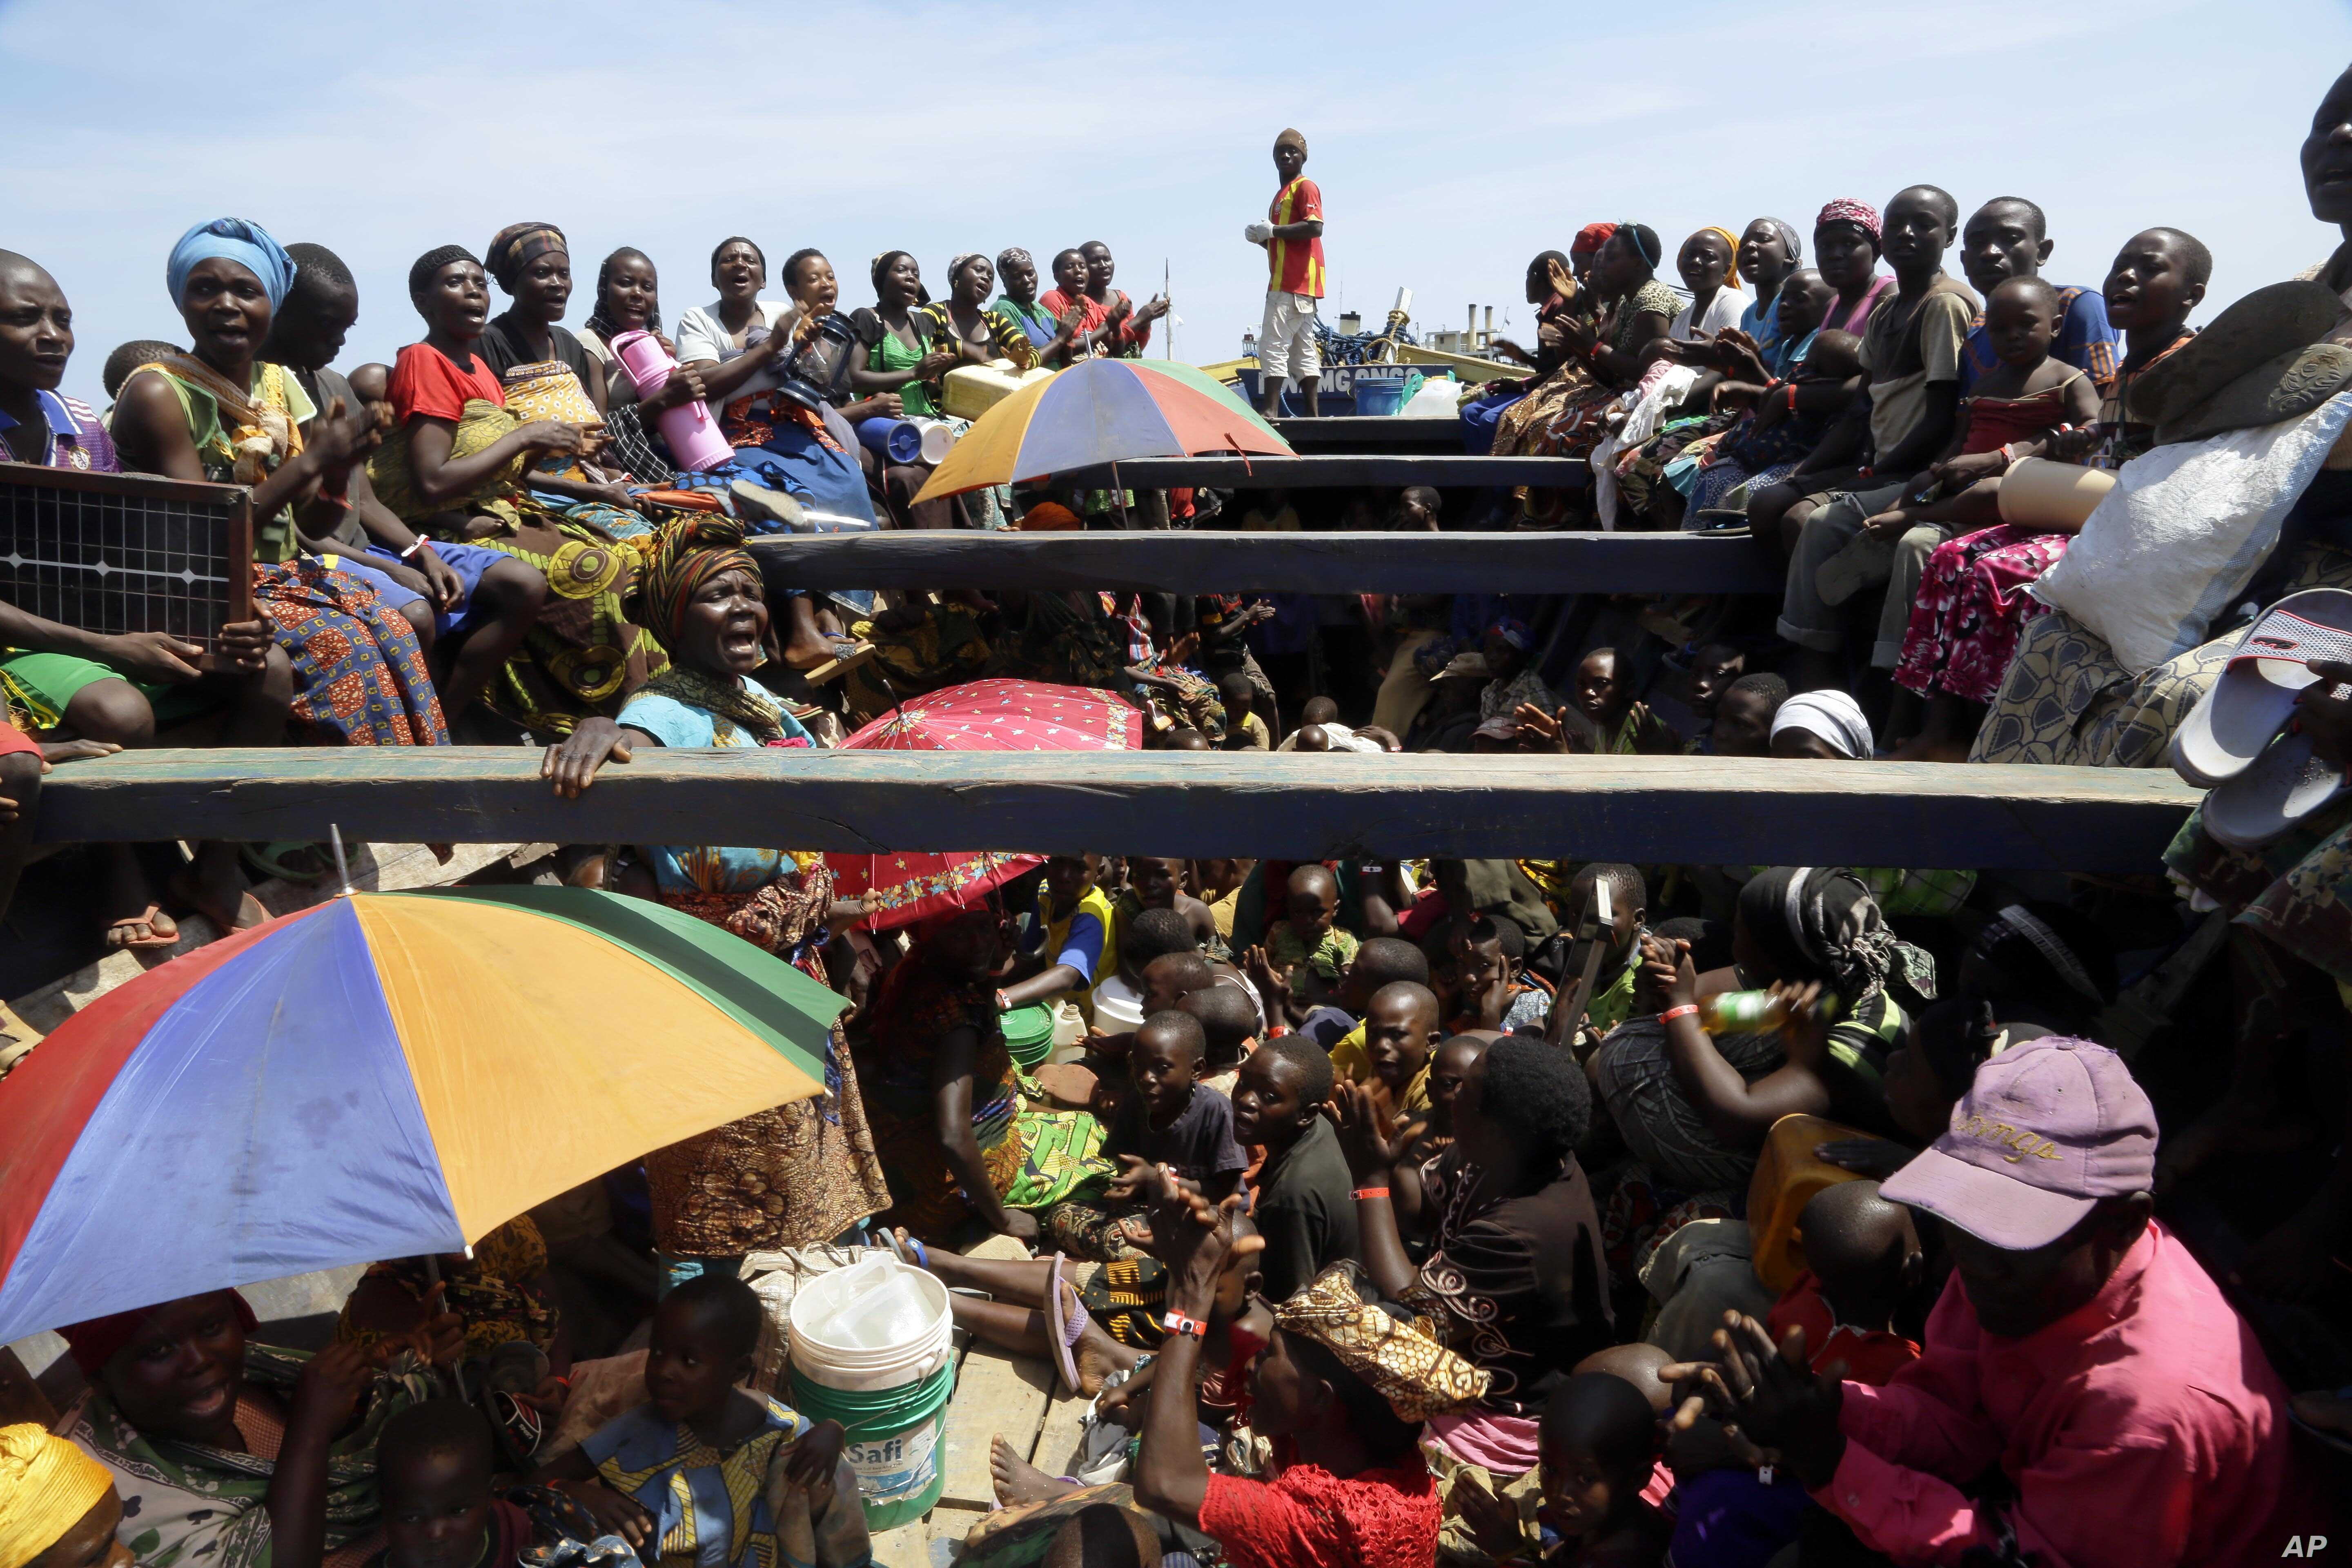 FILE - Refugees who fled Burundi's violence and political tension sing in a speedboat taking them to a ship freighted by the U.N., at Kagunga on Lake Tanganyika, Tanzania, May 23, 2015, to be taken to the port city of Kigoma.